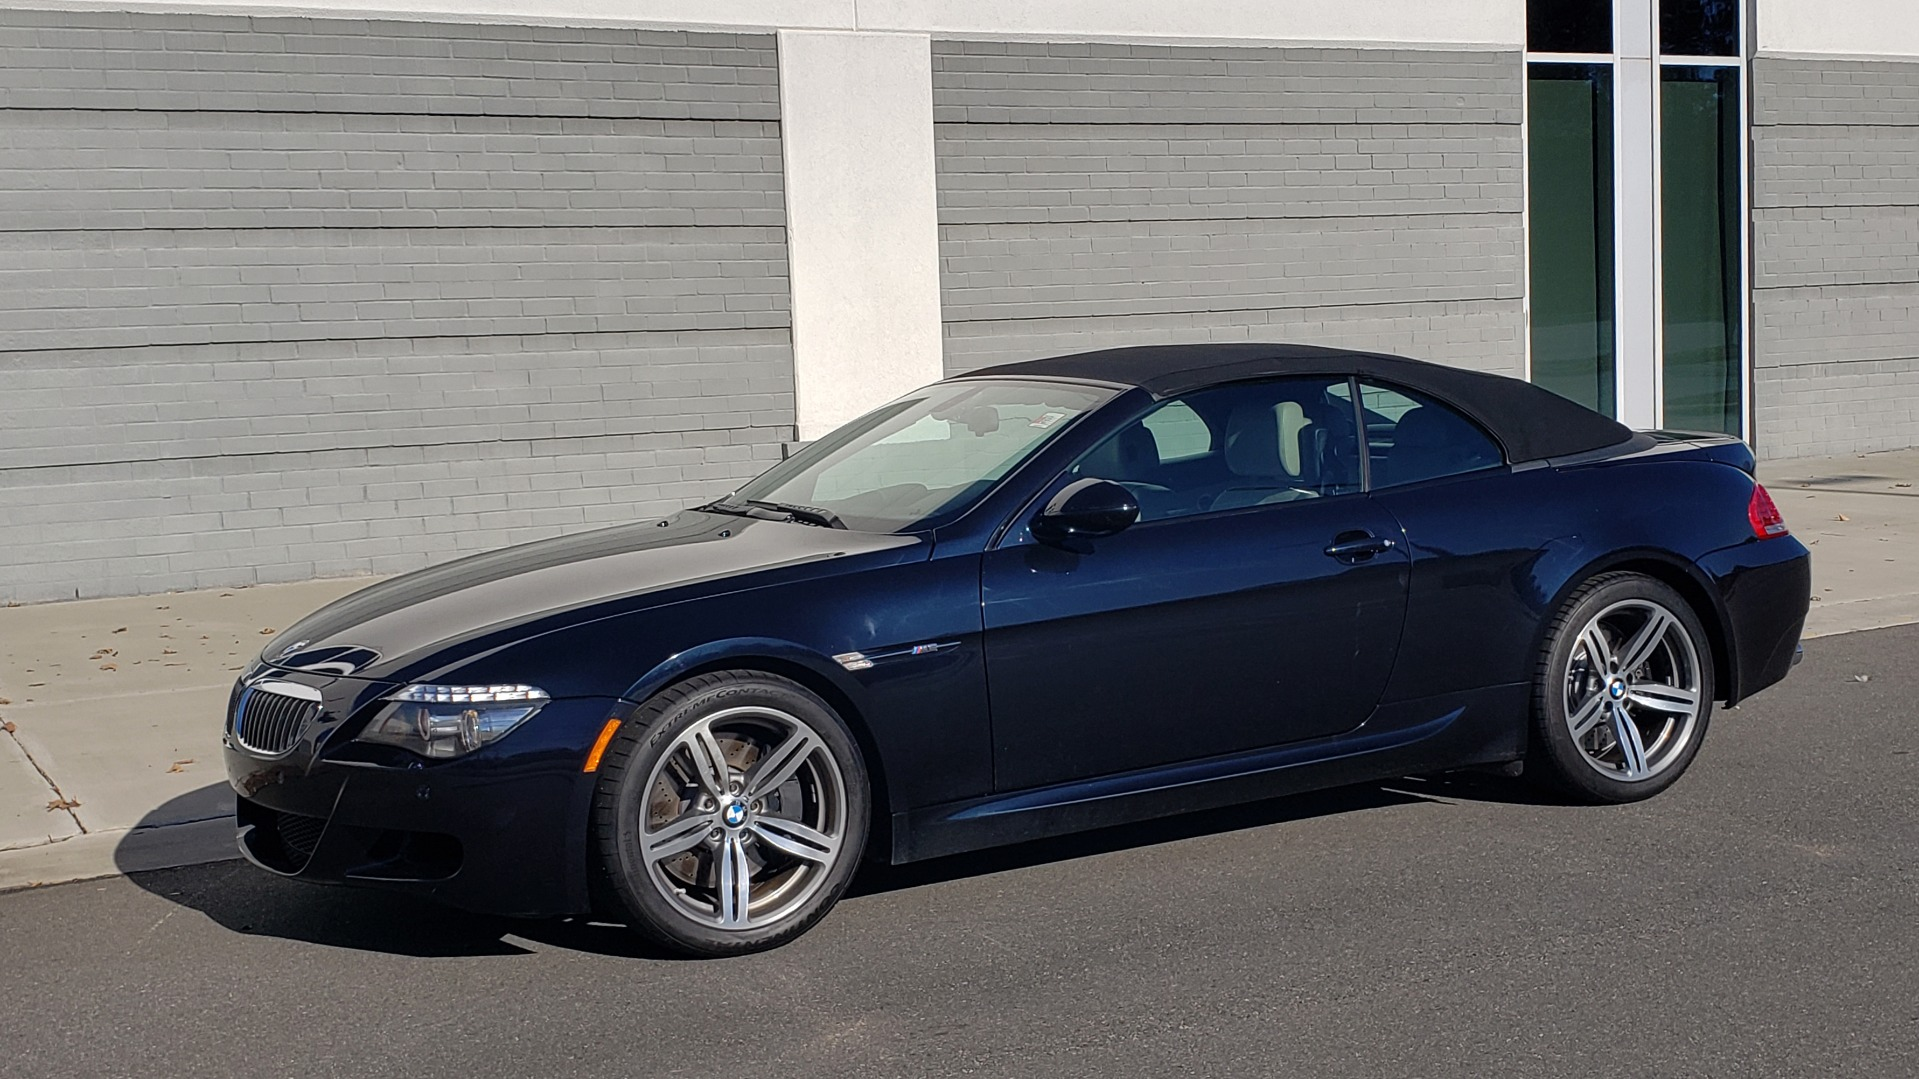 Used 2009 BMW M6 CONVERTIBLE / 5.0L V10 (500HP) / PREM SND / HUD / 19IN WHEELS for sale $24,999 at Formula Imports in Charlotte NC 28227 4